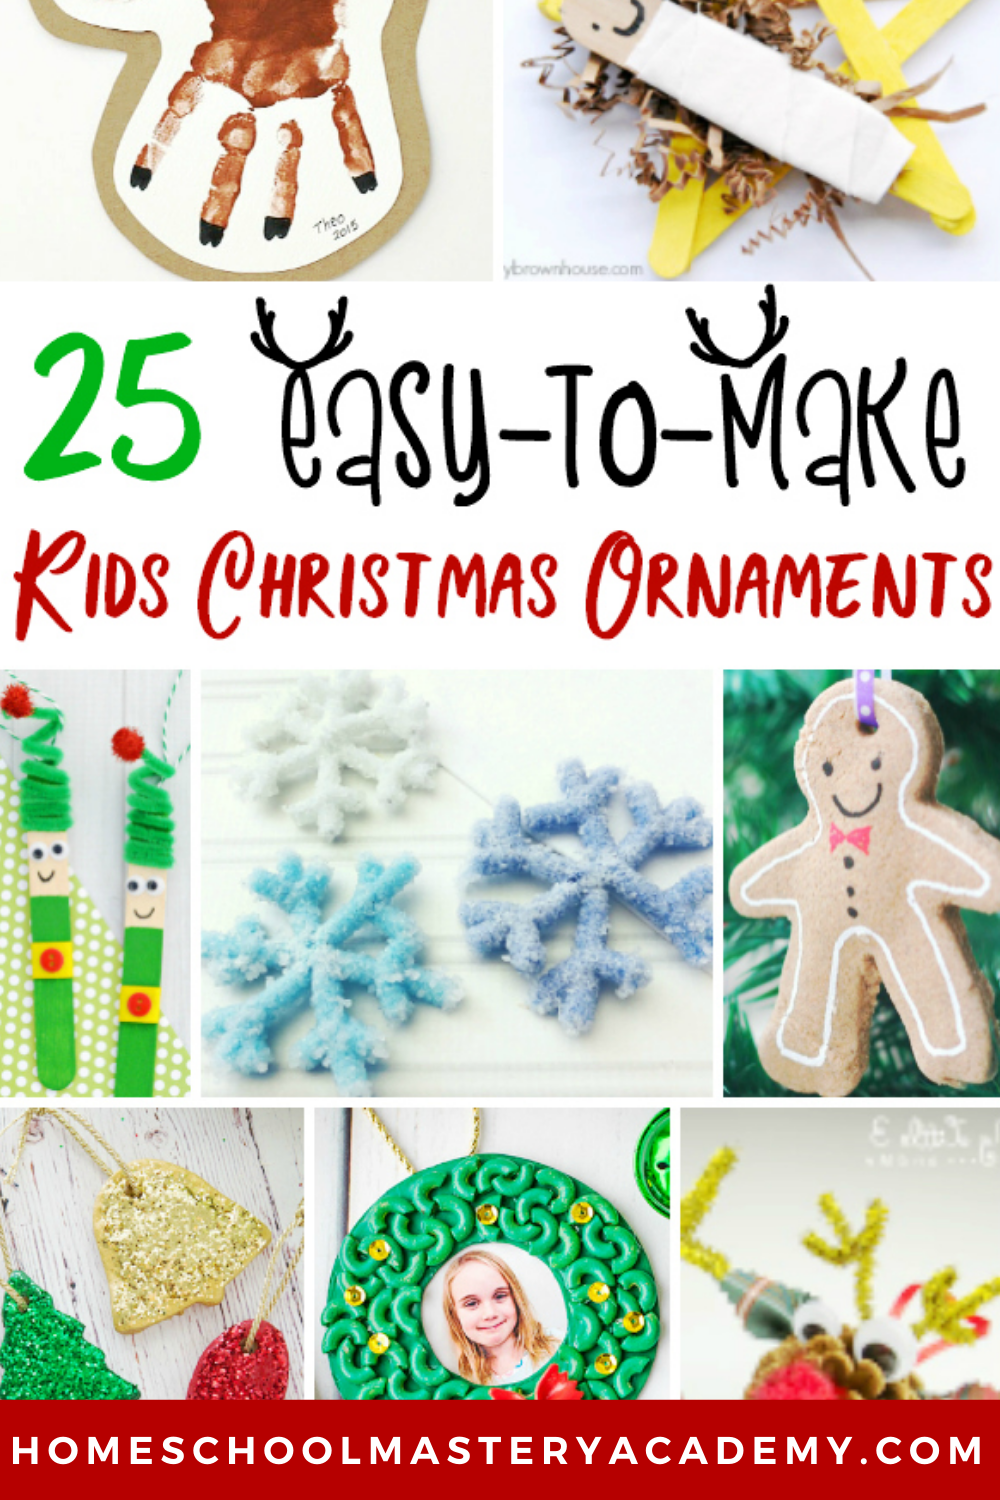 Easy-To-Make Ornaments For Children